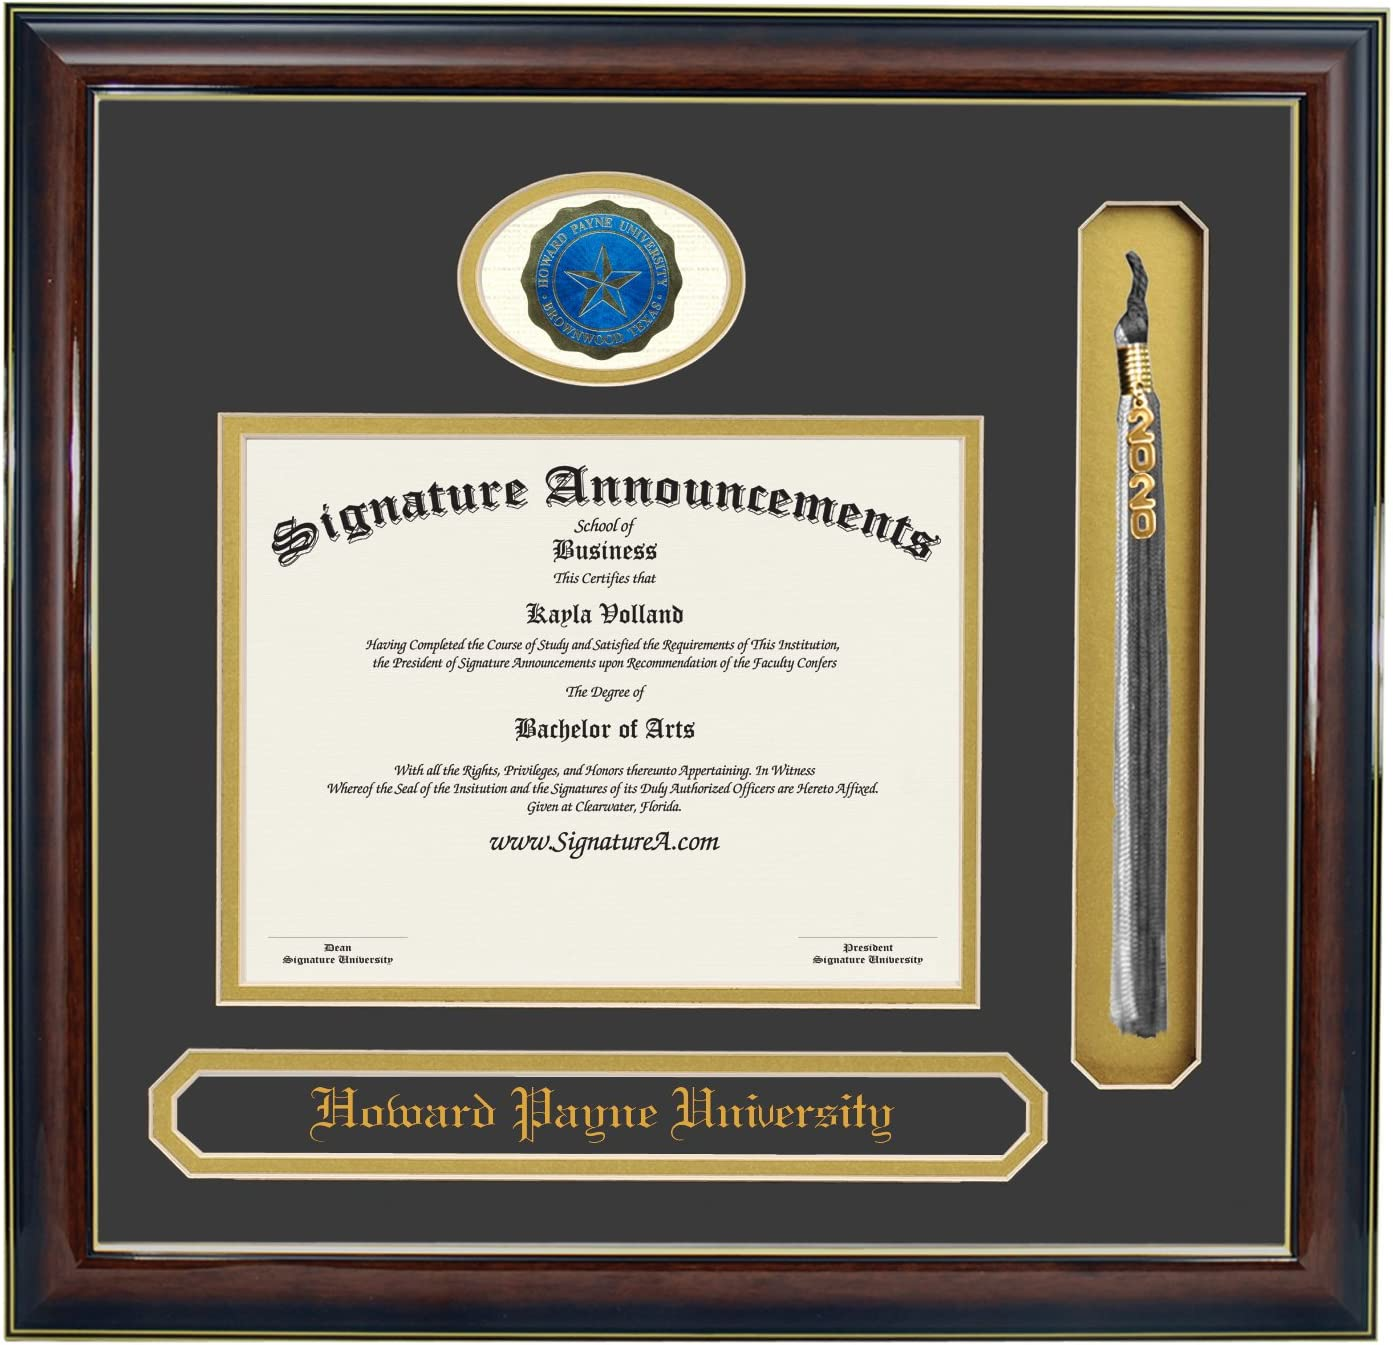 Signature Announcements New-Jersey-Institute-of-Technology Doctorate Sculpted Foil Seal /& Name Graduation Diploma Frame 20 x 20 Matte Mahogany